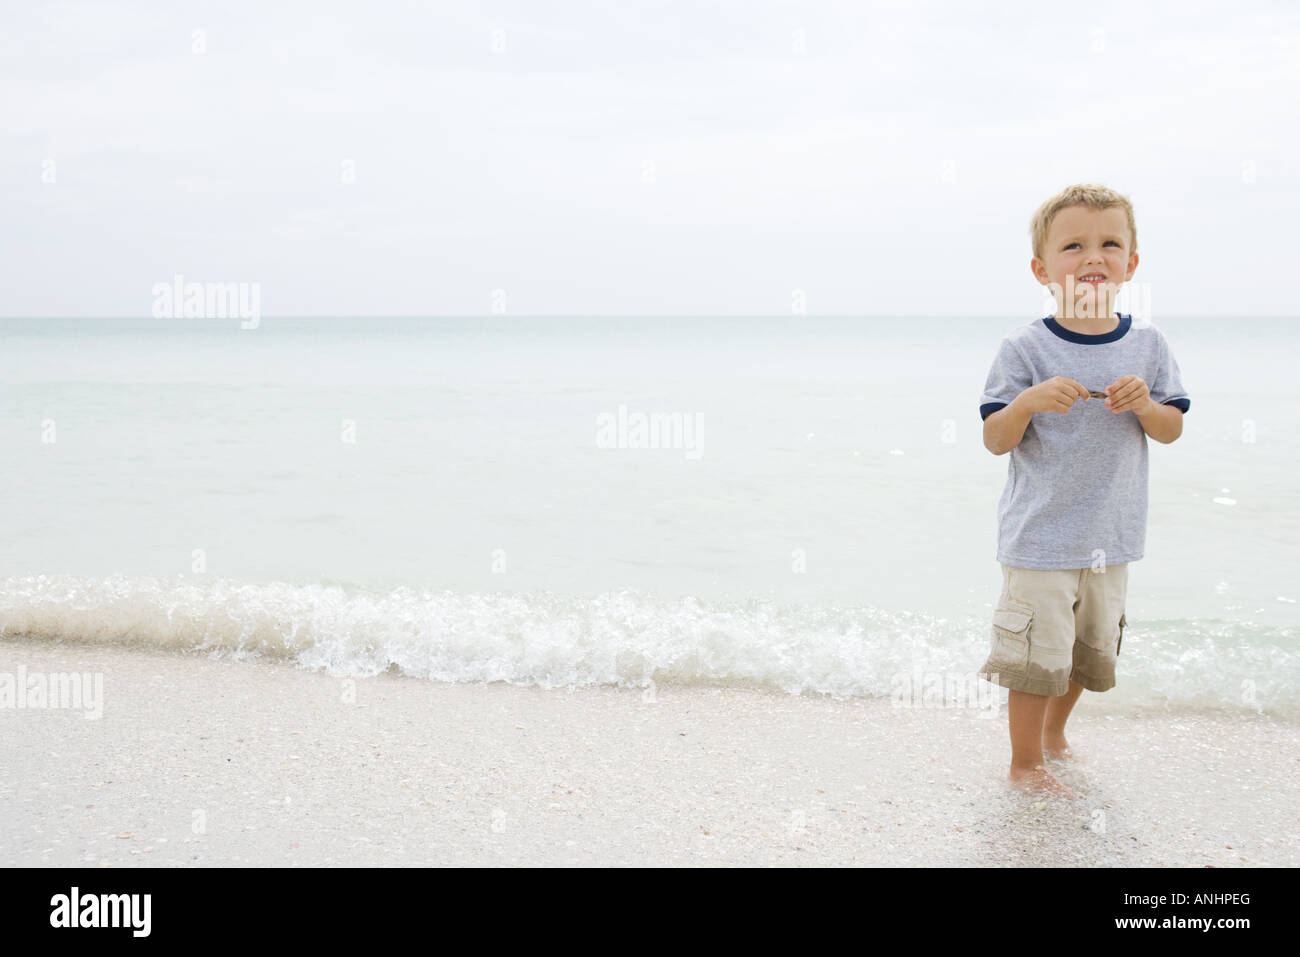 Boy at the beach, standing ankle deep in water, looking up and smiling - Stock Image